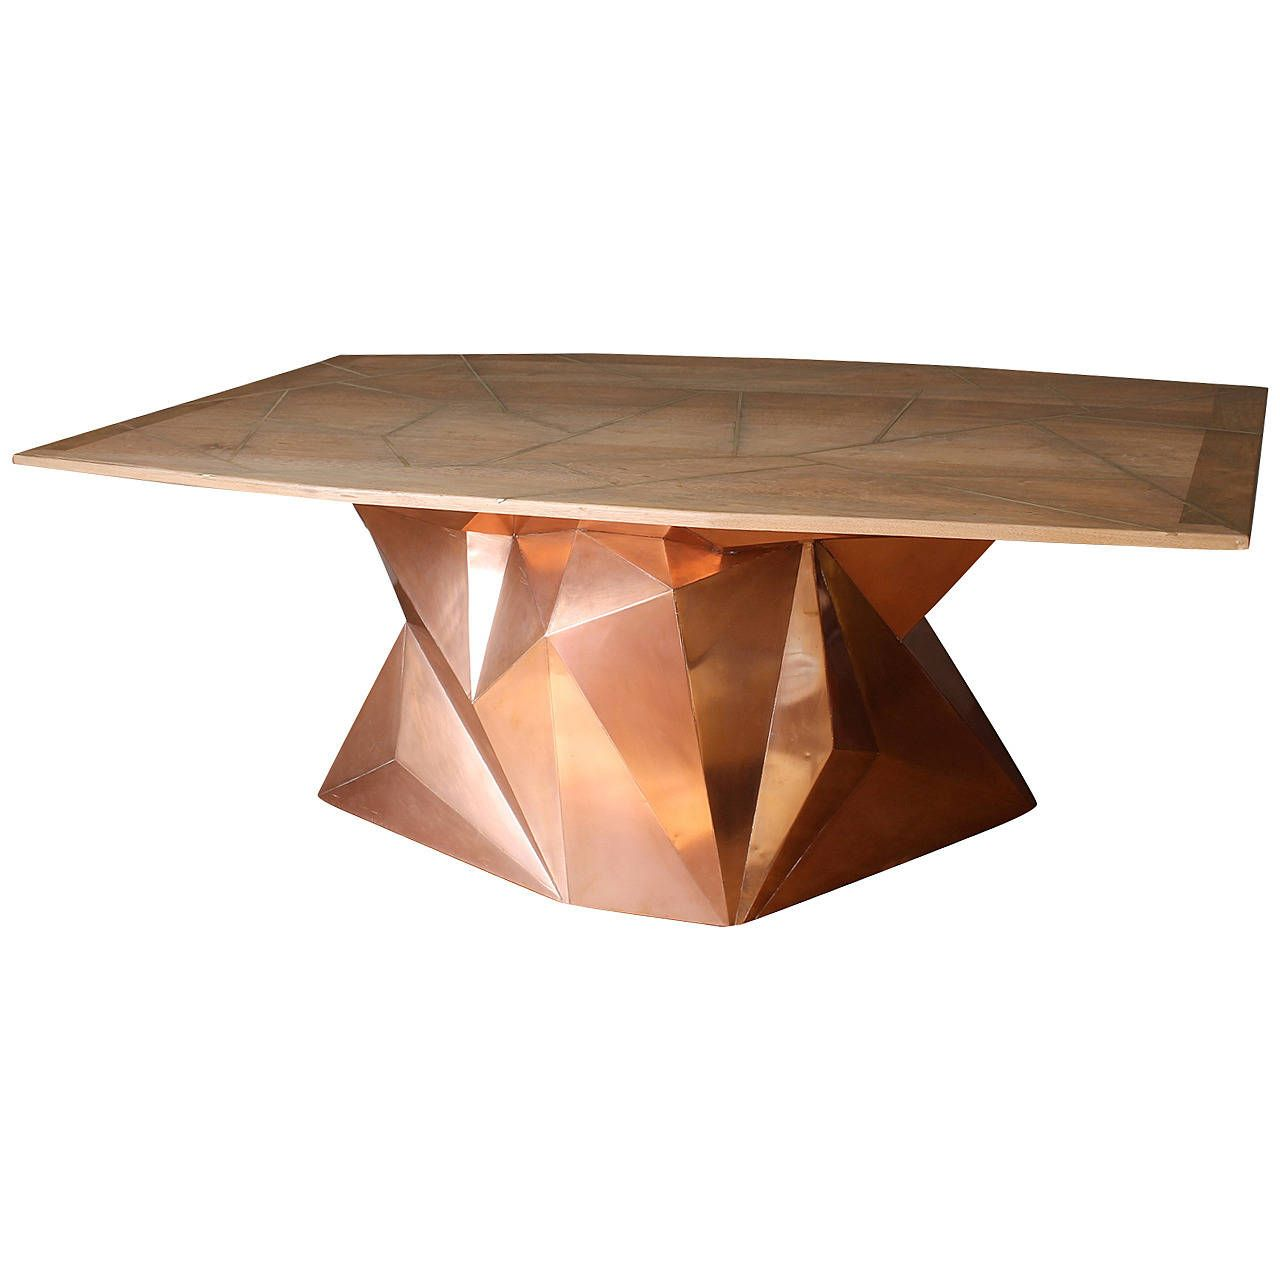 Faceted Copper And Reclaimed Wood Nomada Dining Table By Alberto Vieyra 1stdibs Com Dining Table Antique Table Modern Dining Room Tables [ 1280 x 1280 Pixel ]